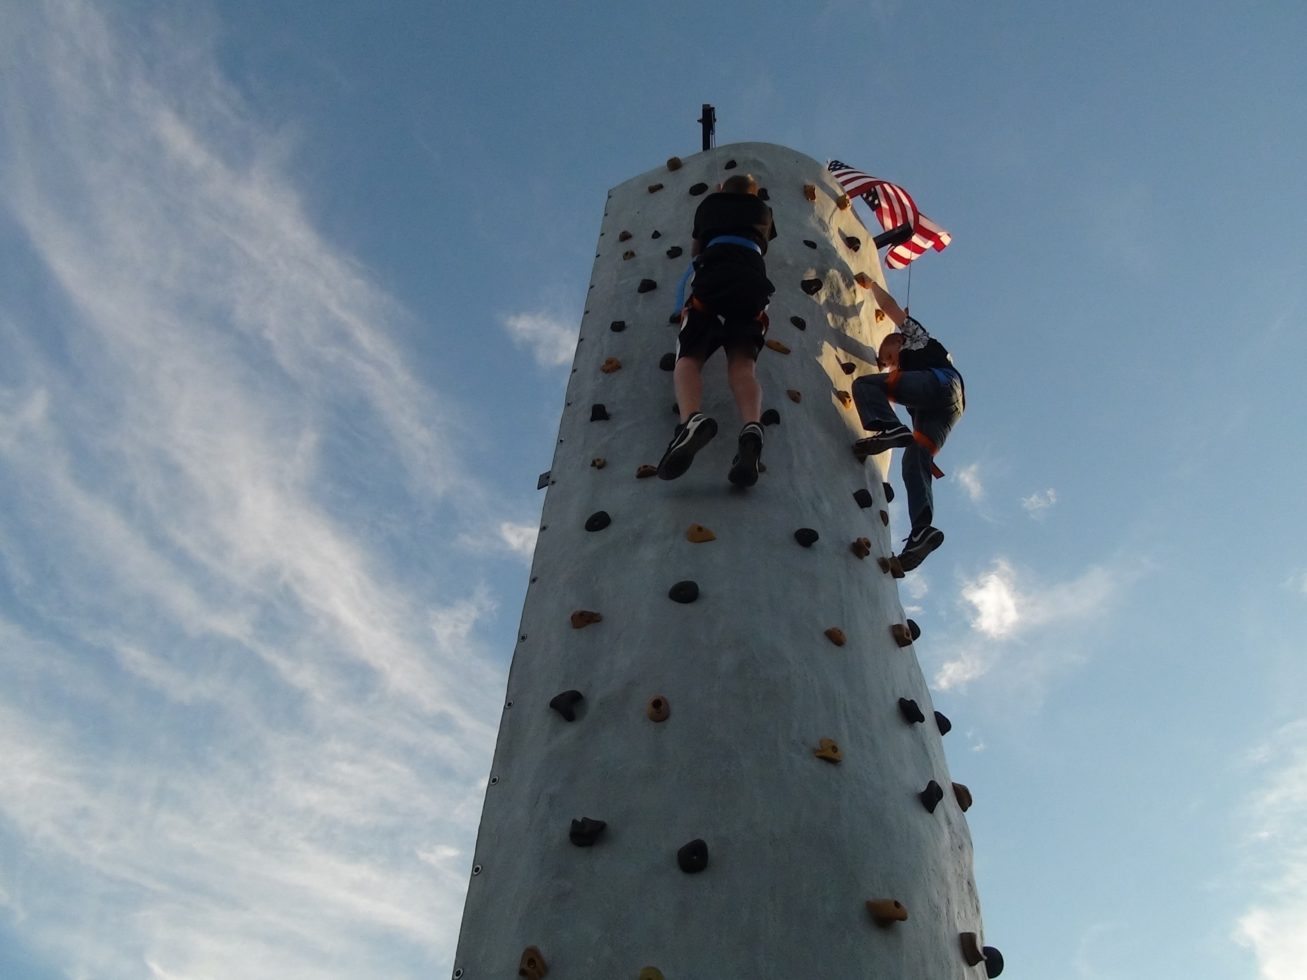 Kids climbing rock wall